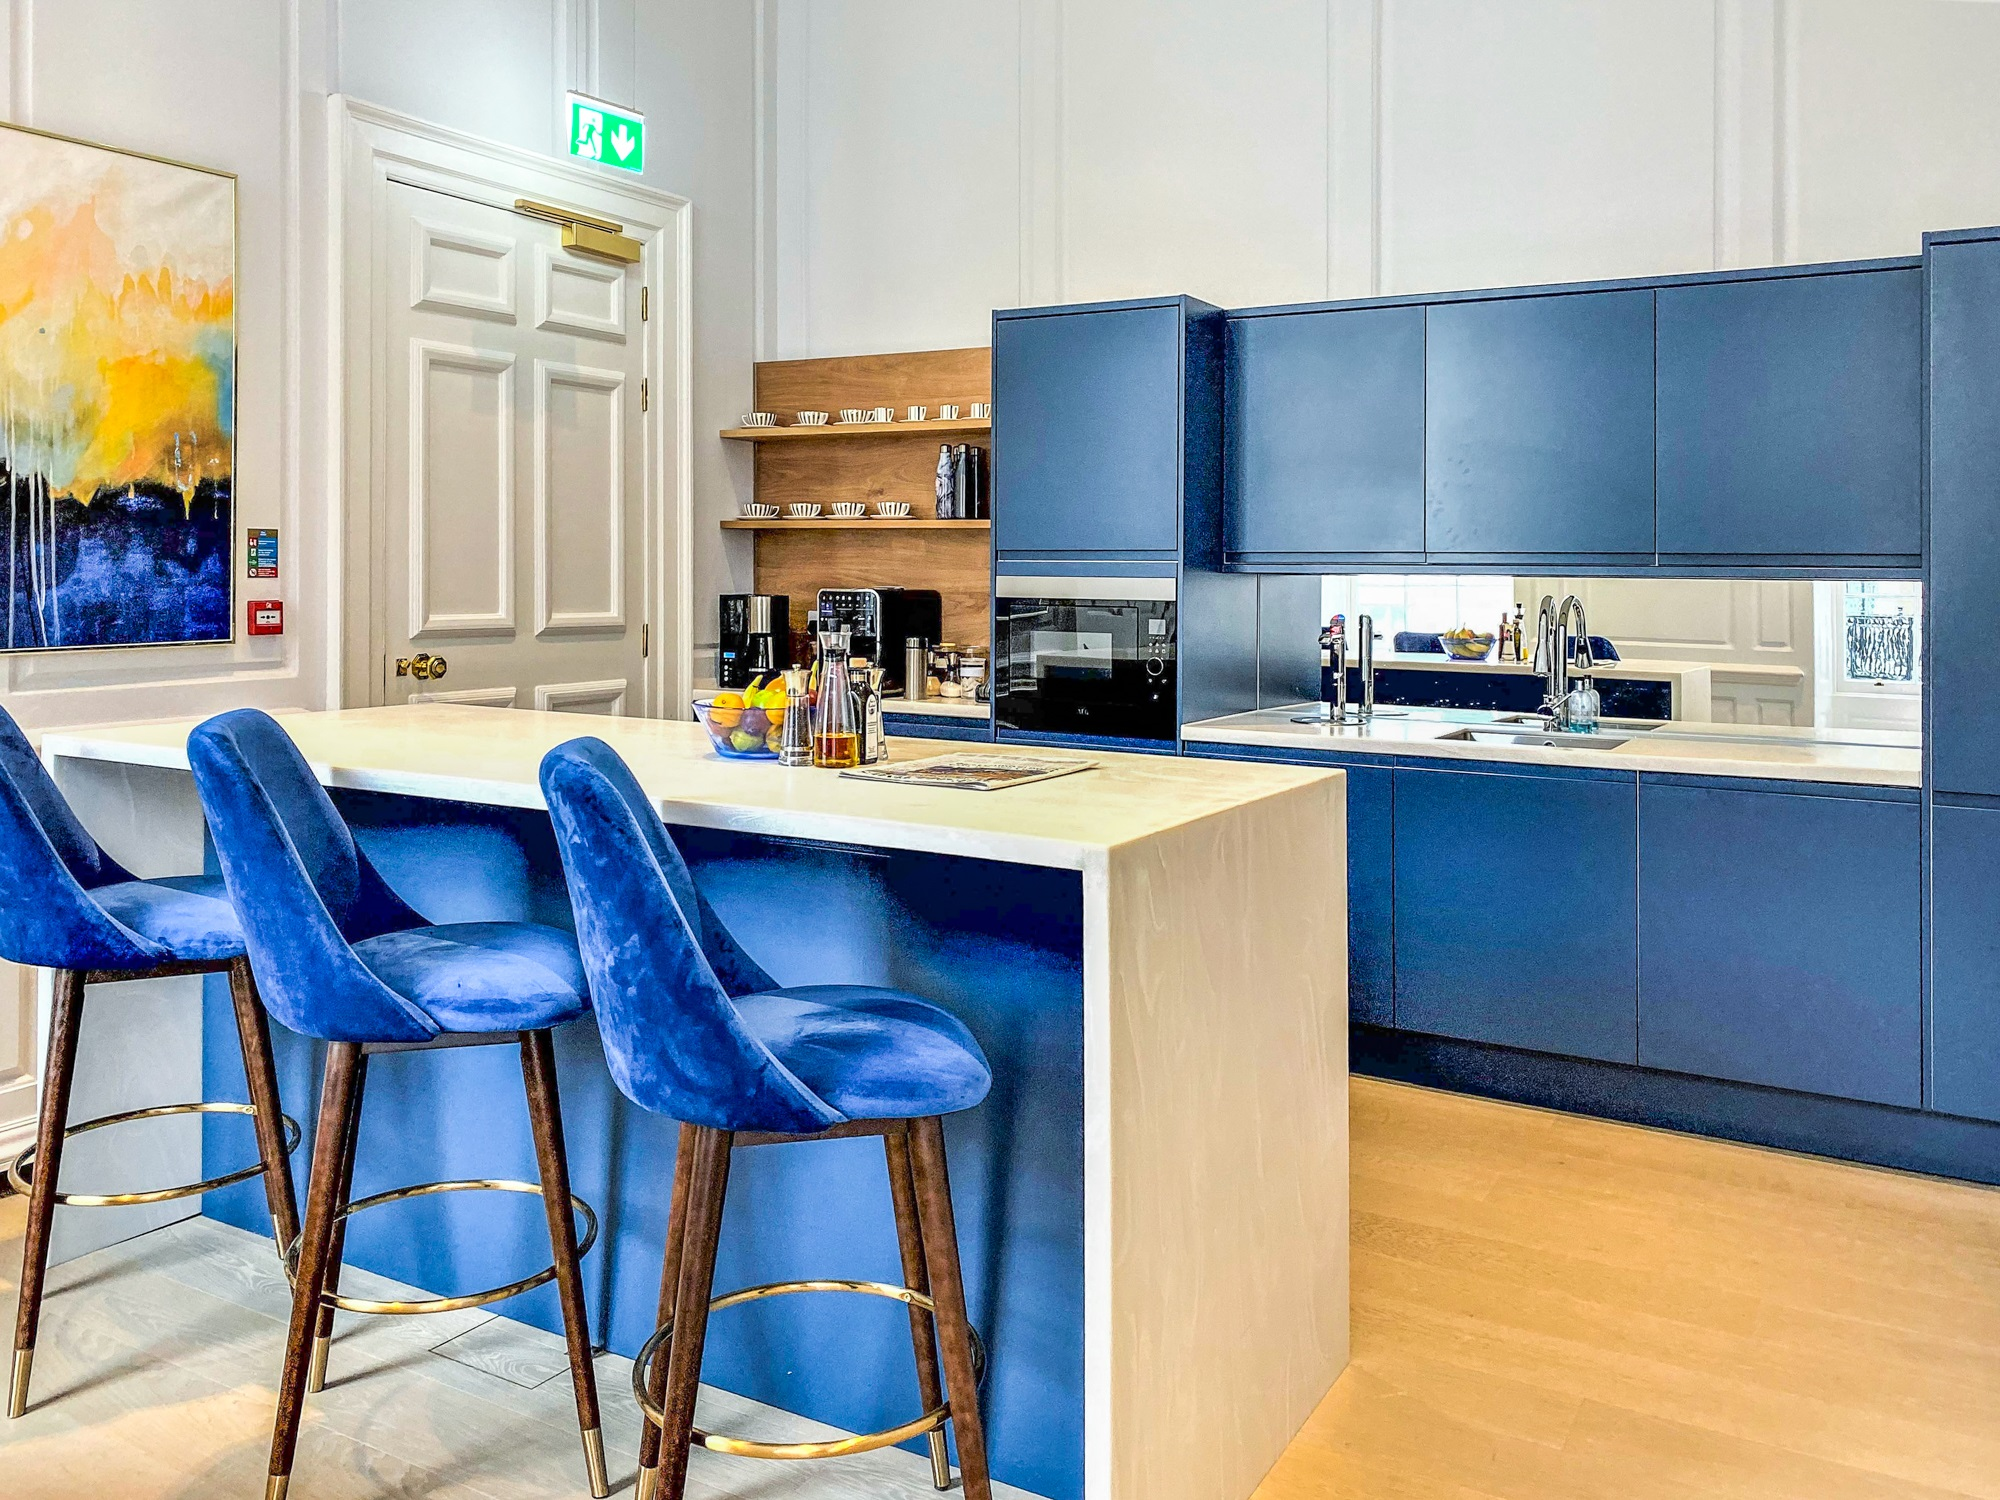 kitchen with blue cupboards and bar stools